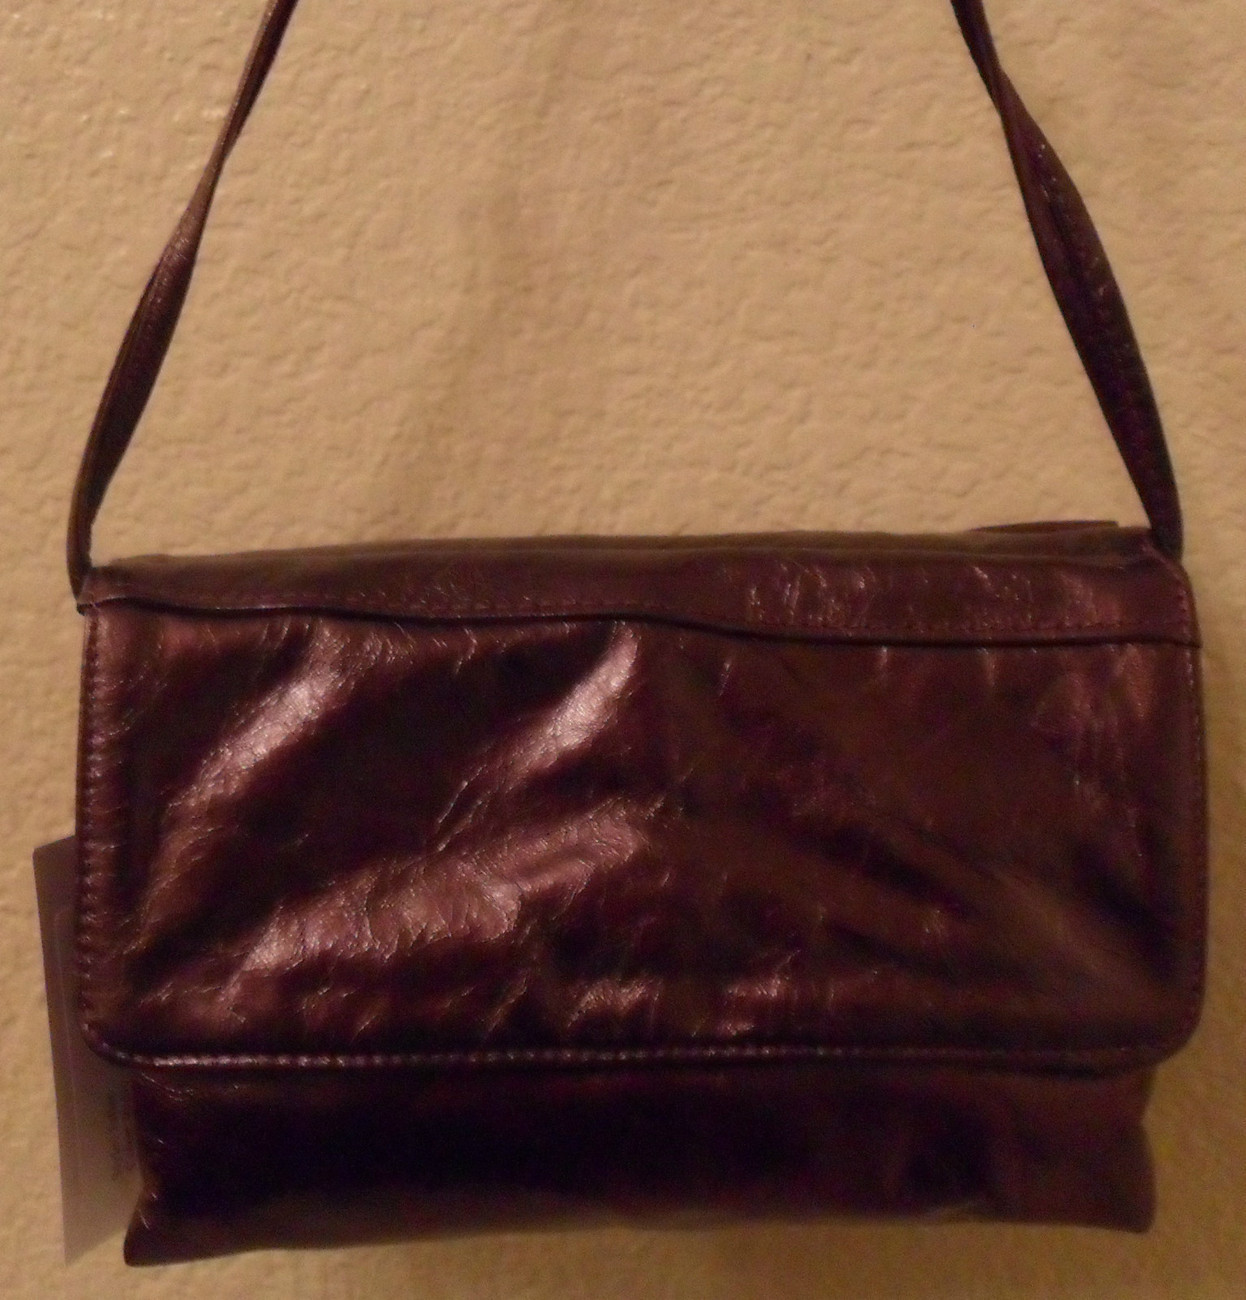 NWT SUSAN FARBER Ruby Leather Juliet Ruffle Shoulder Bag NEW (MAKE AN OFFER)